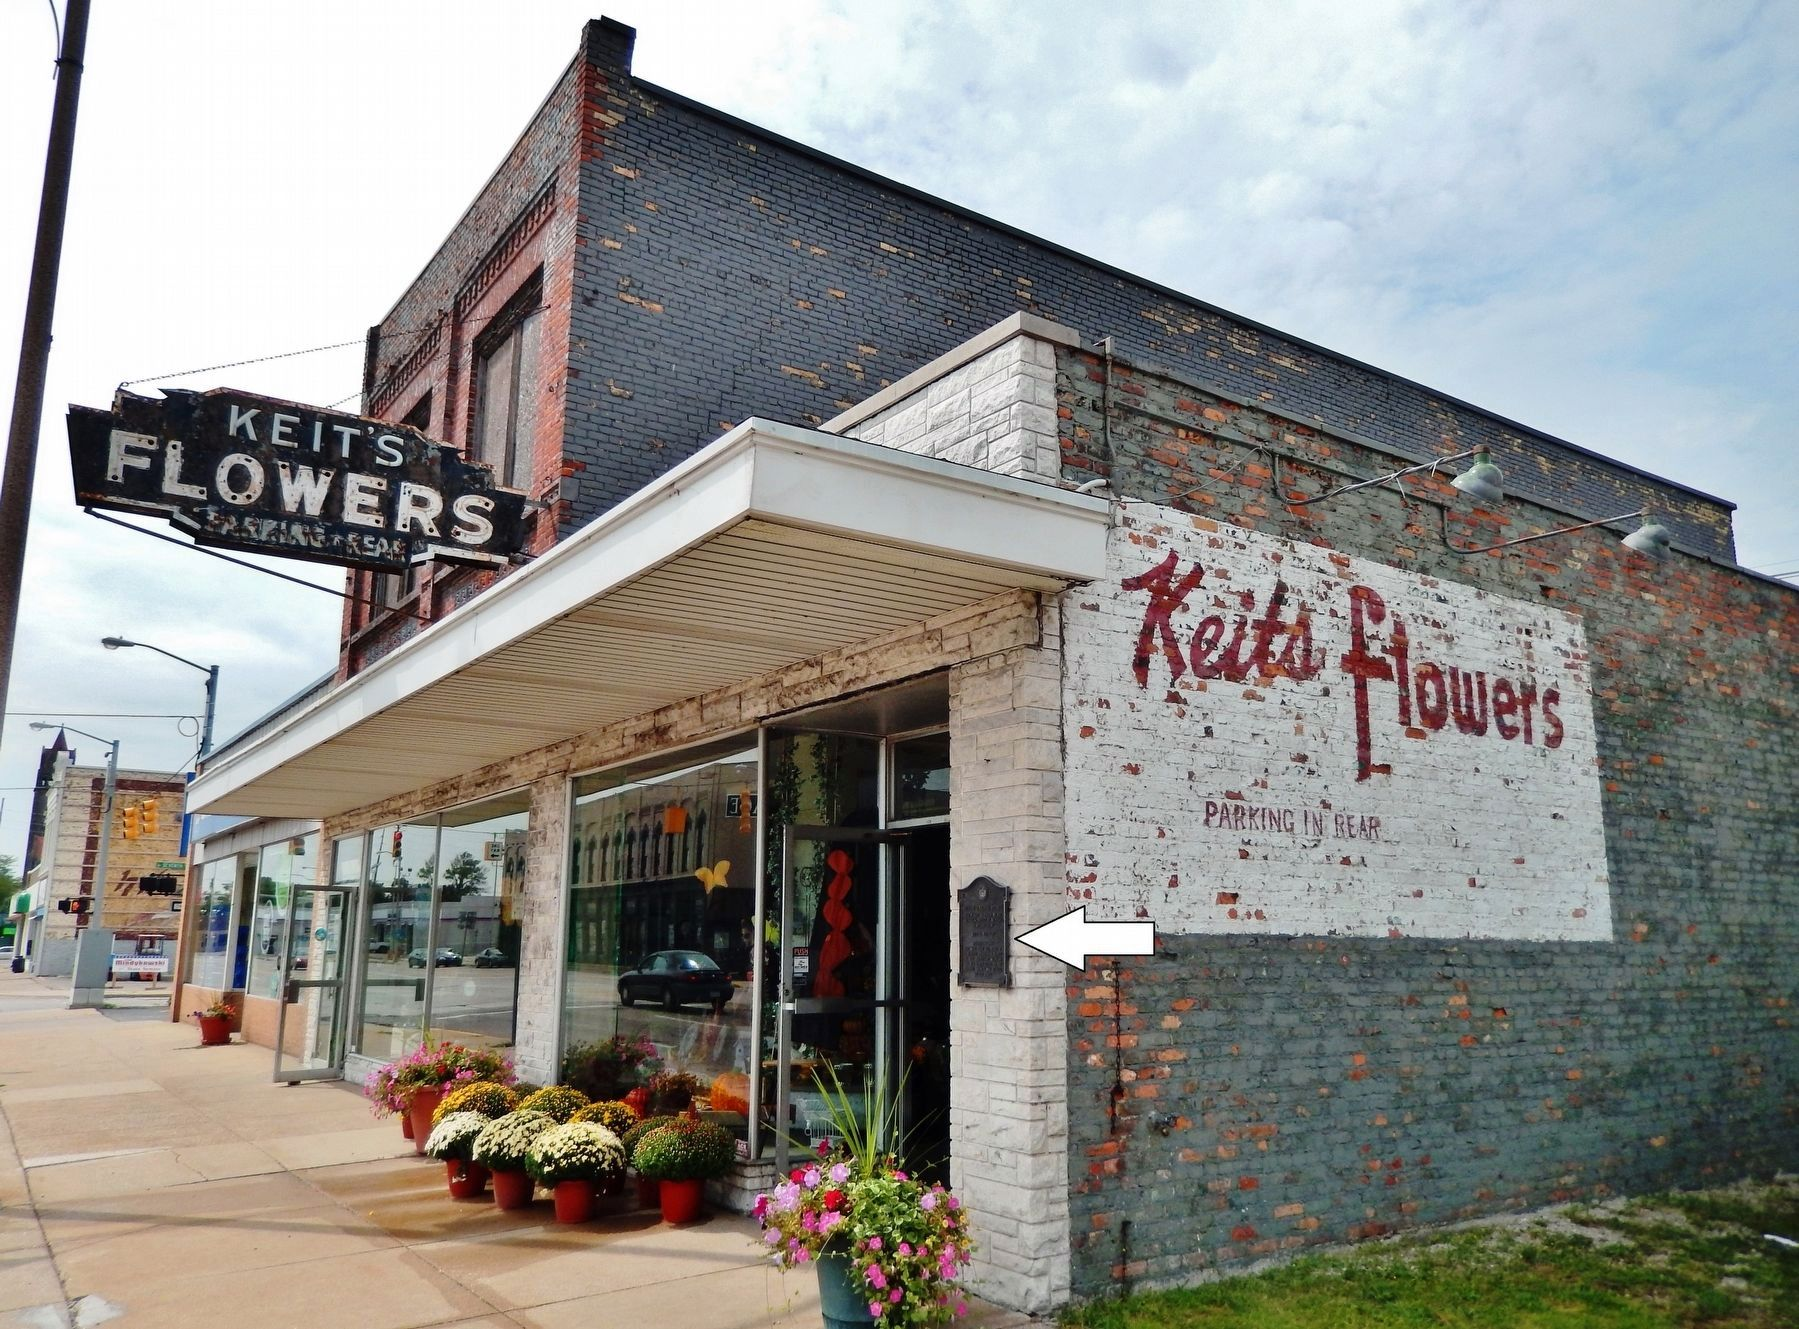 Keit's Flowers (<i>northeast corner view; marker visible at corner of building</i>) image, Touch for more information